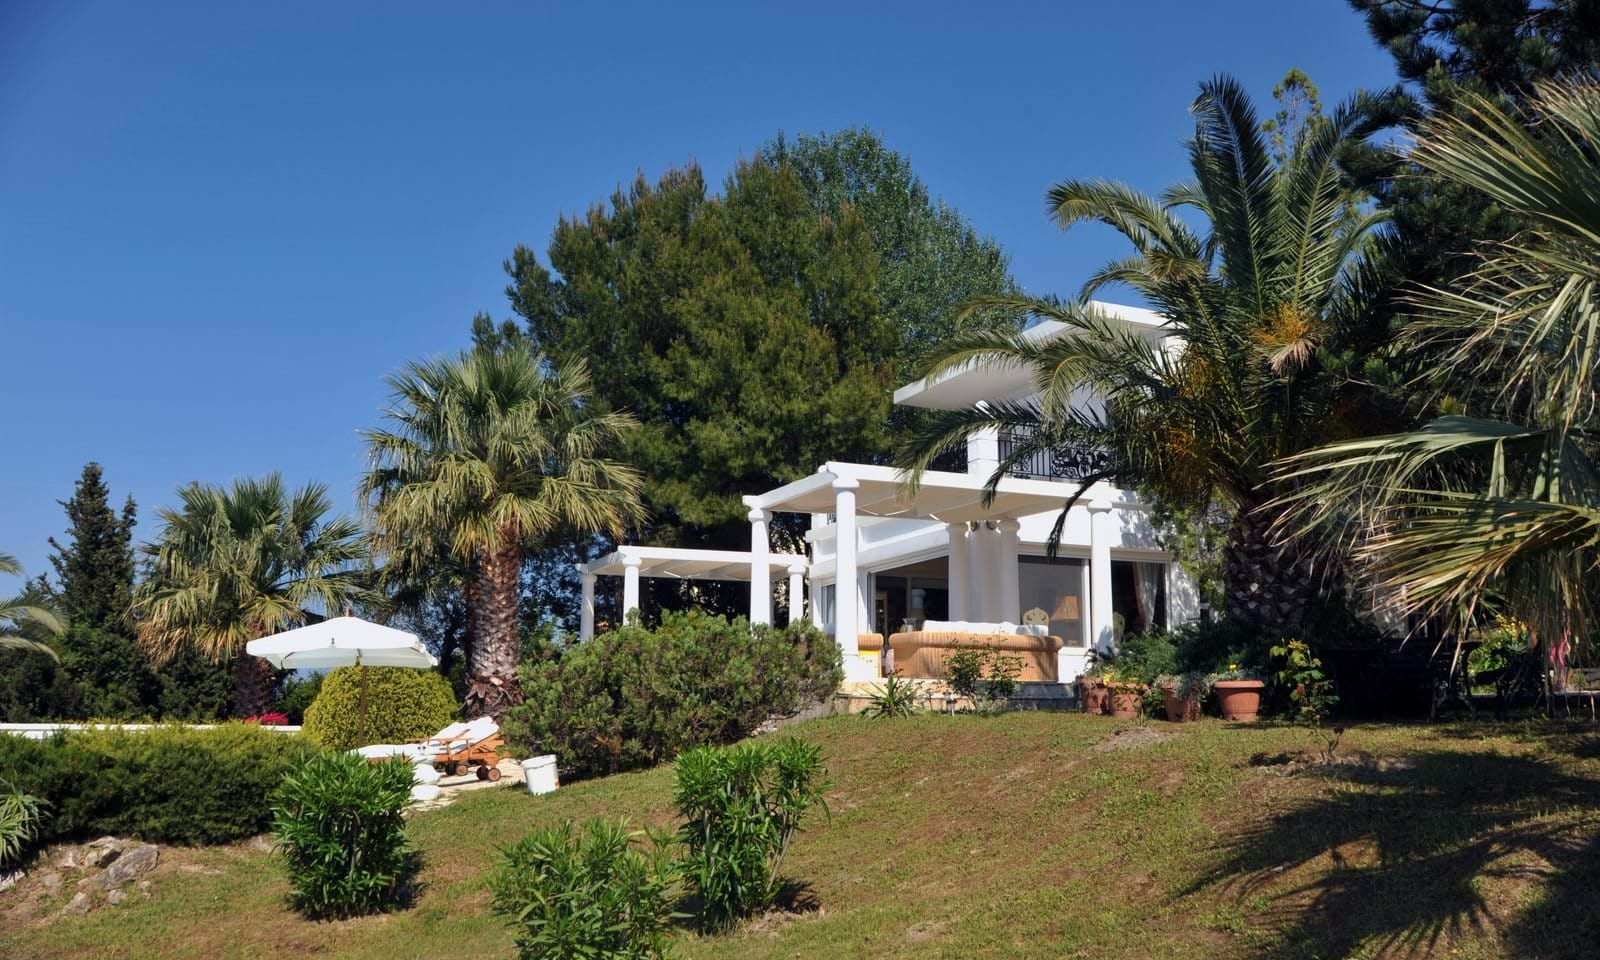 Sea front property in Corfu